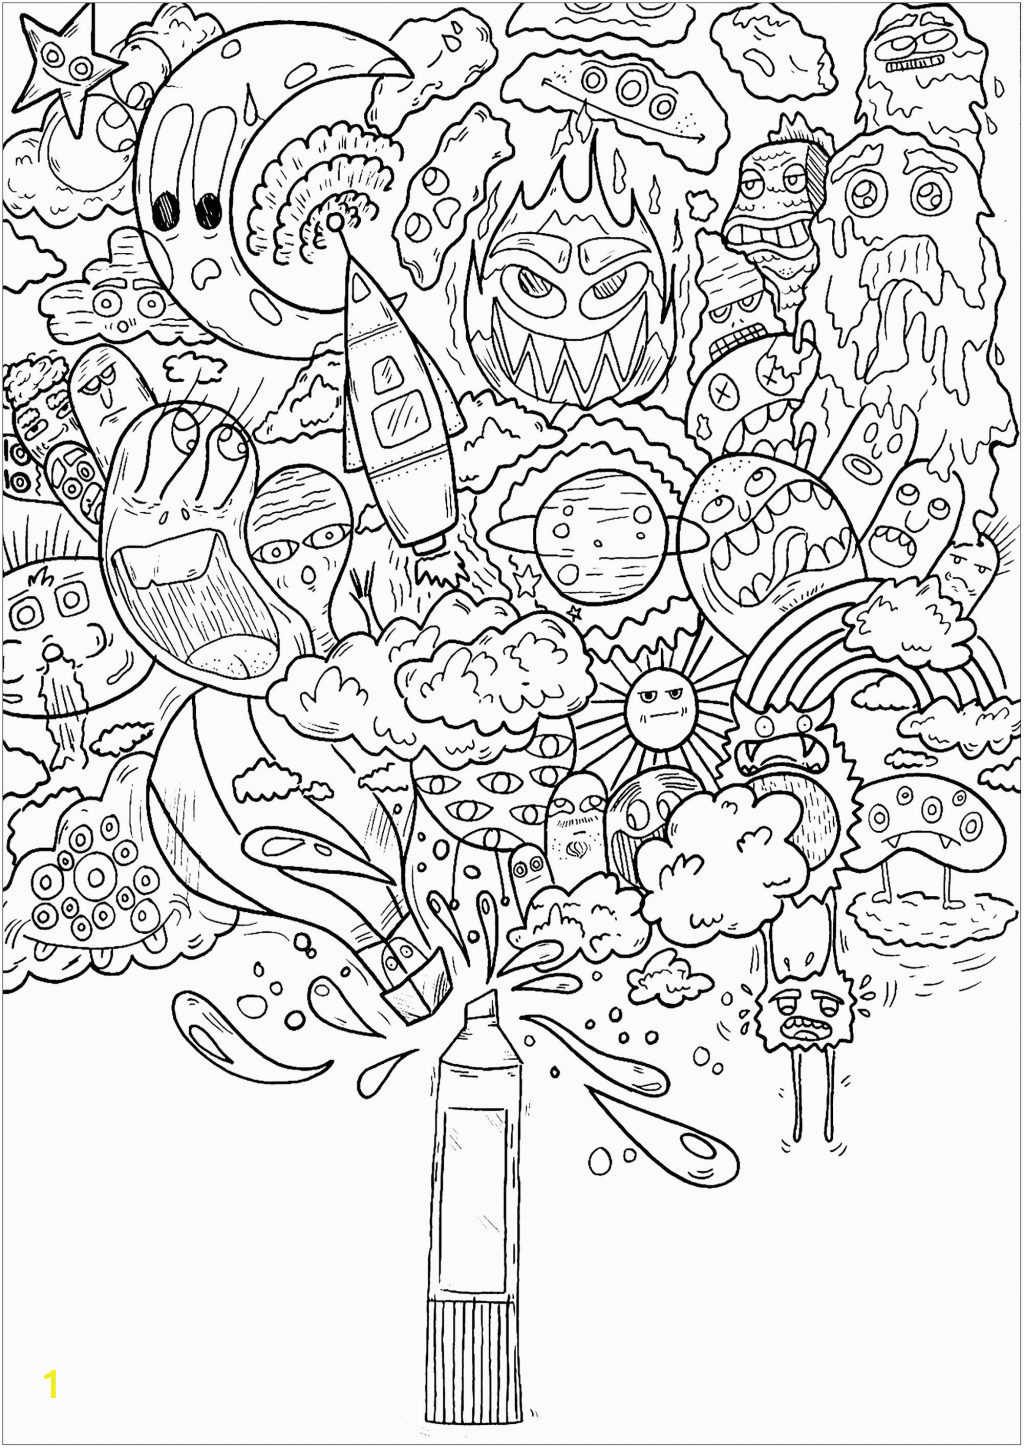 coloring pages doodles baby horse adult colouring lion books for visually impaired adults shopkins sheets serial killers book modern romance printable unicorn spring farm animal pretty 1024x1448